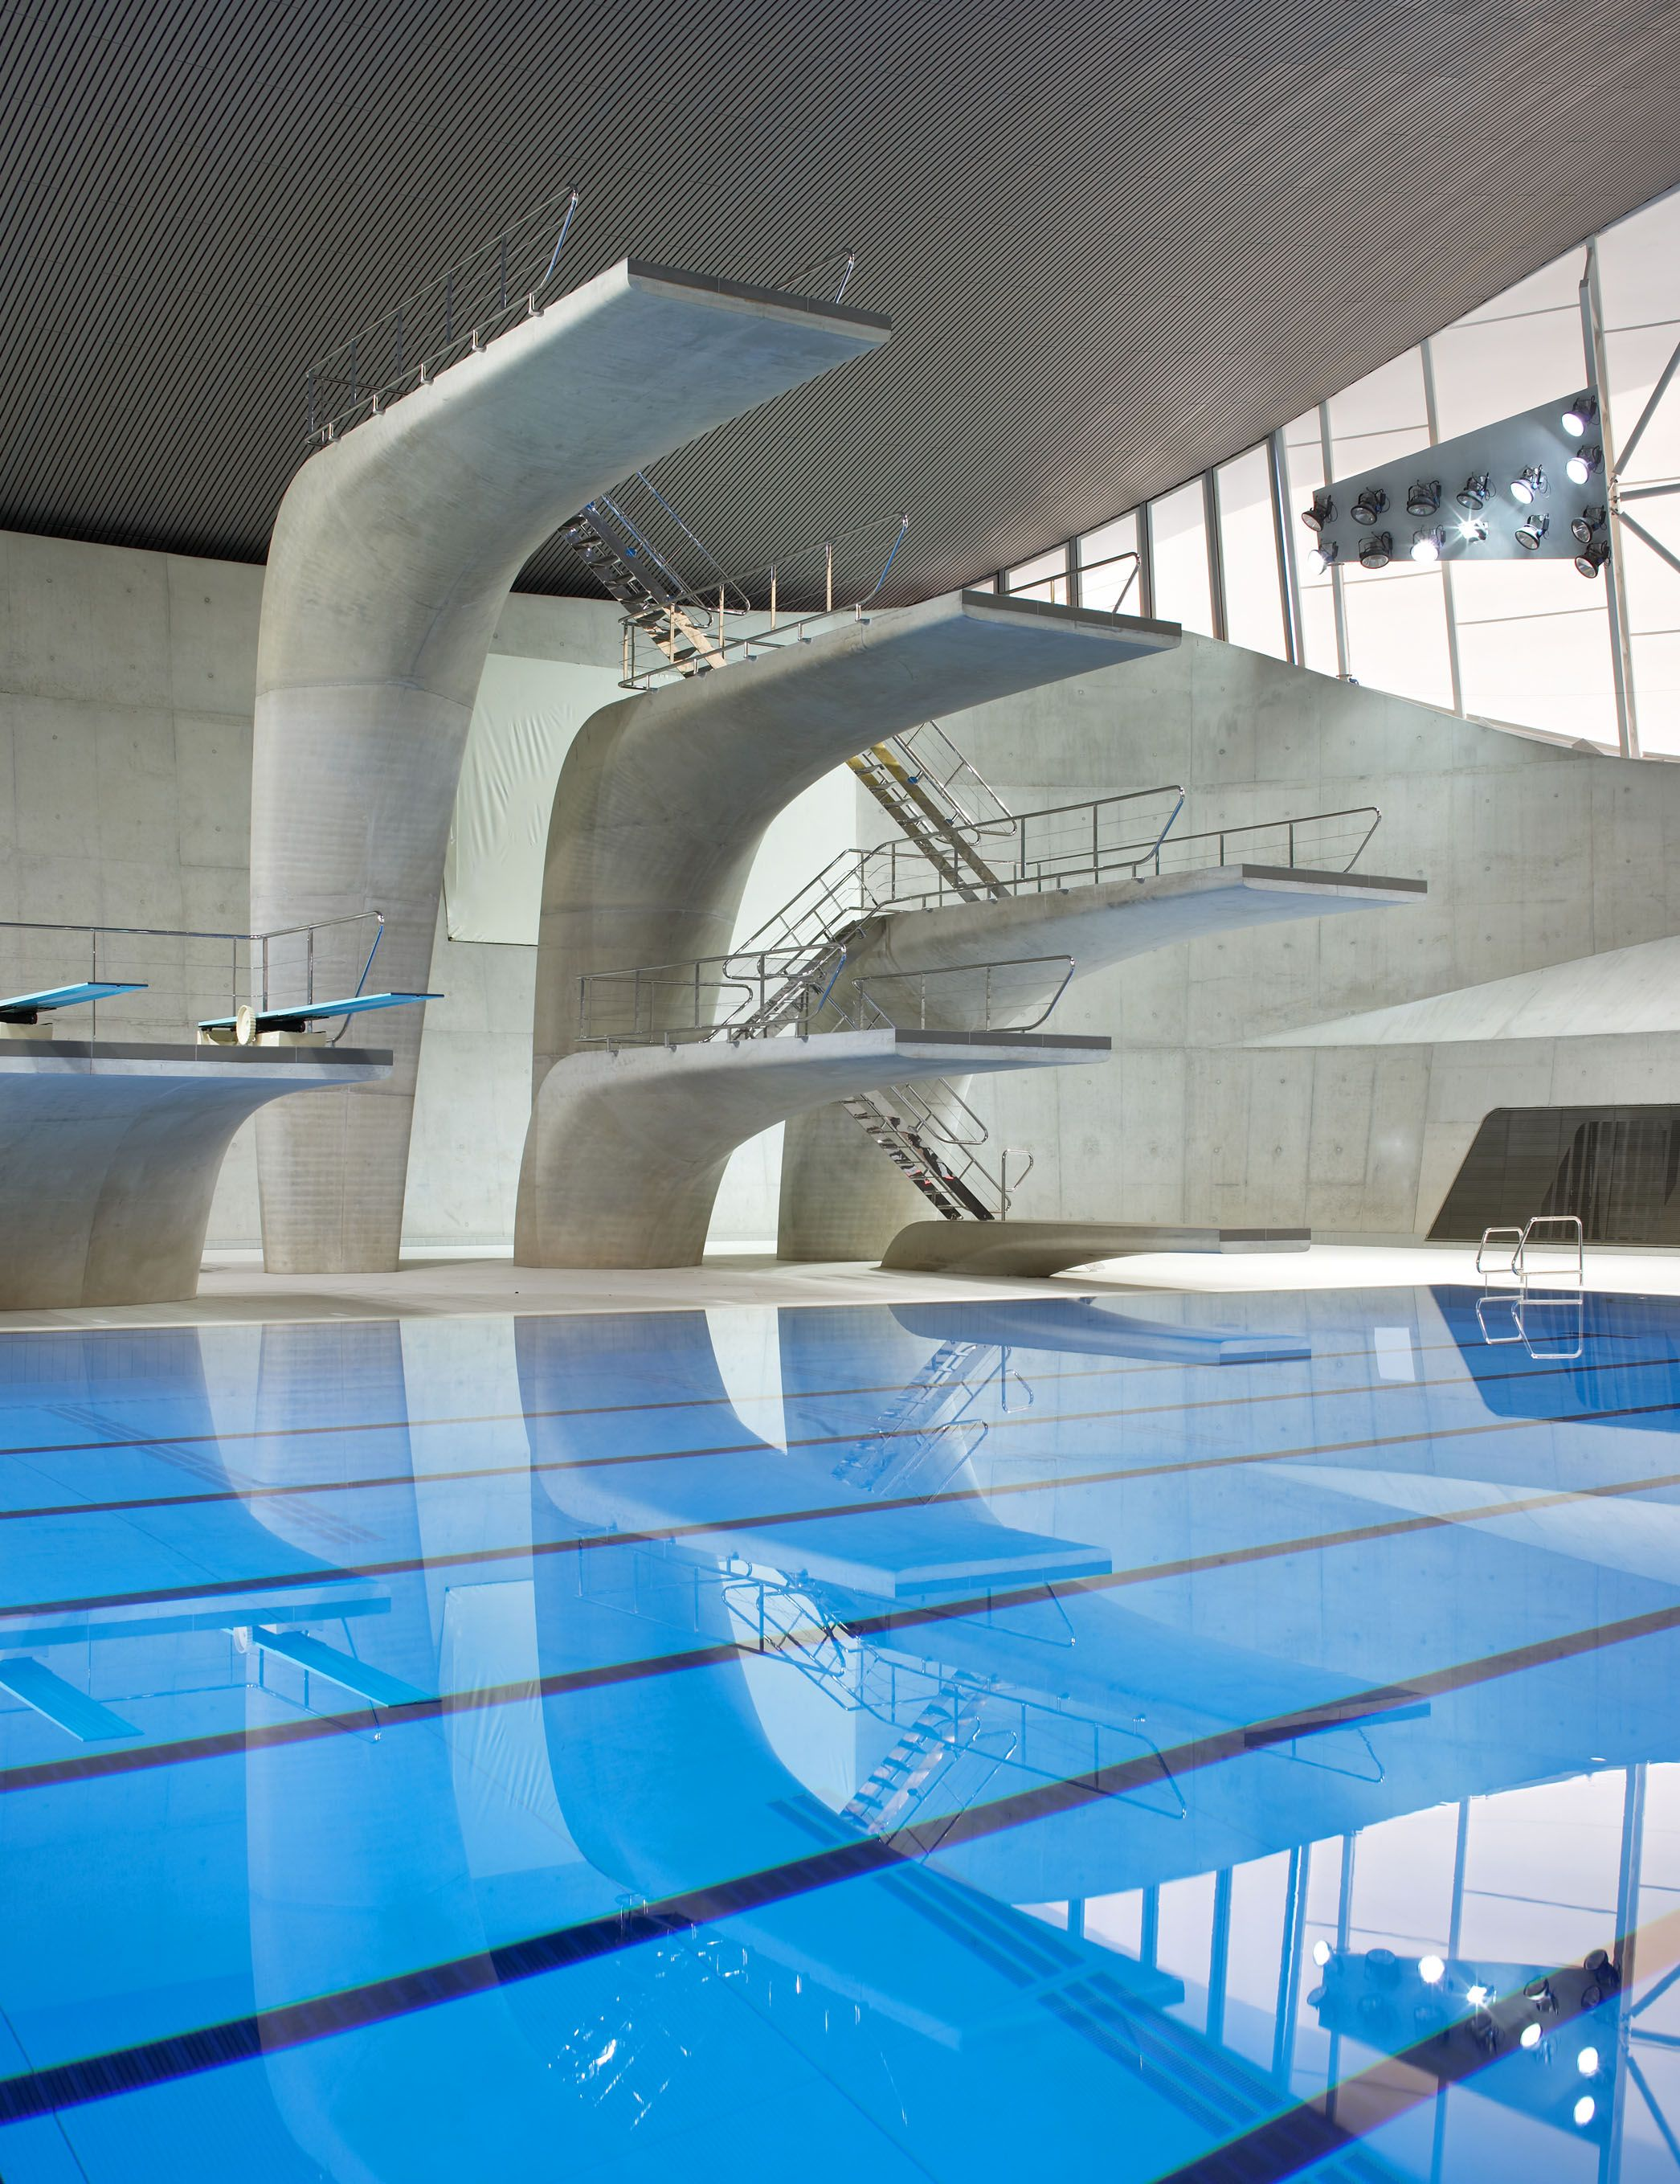 Home to have angered locals is a 30 000 square foot creation of hadid - Springboards Of The Acquatics Centre Of London By Zaha Hadid